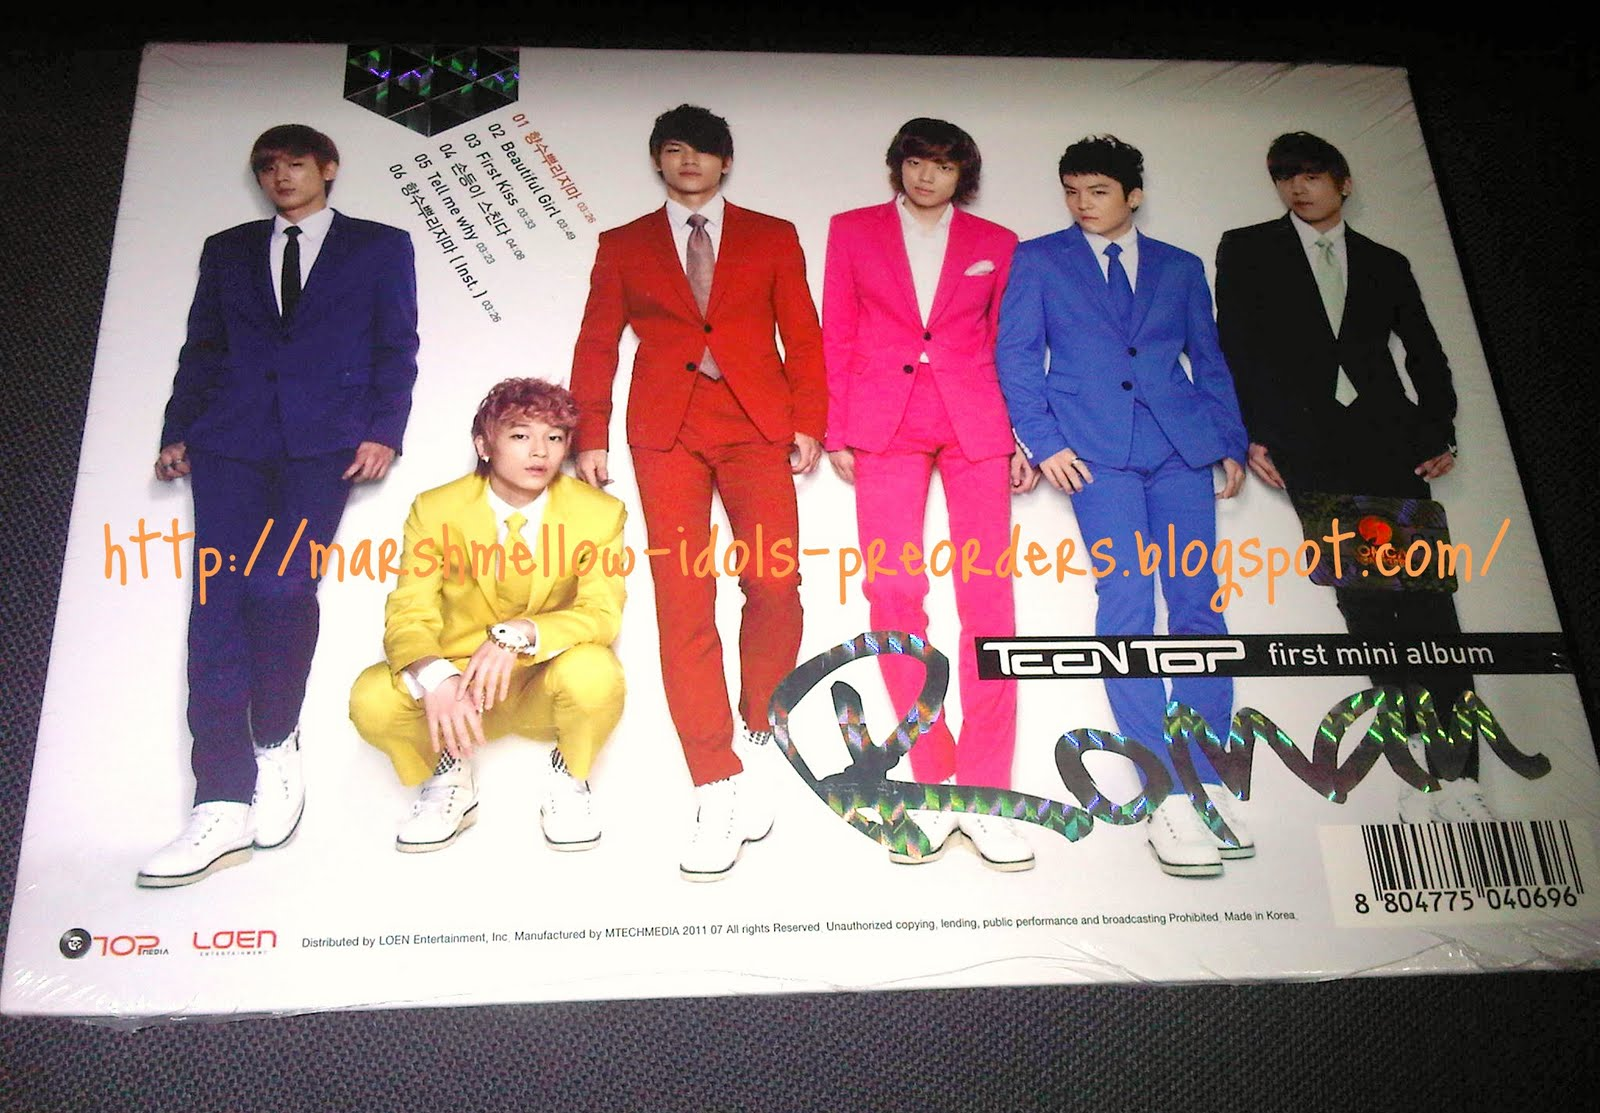 We have others Teen Top albums/merchandise too. Feel free to email us :D